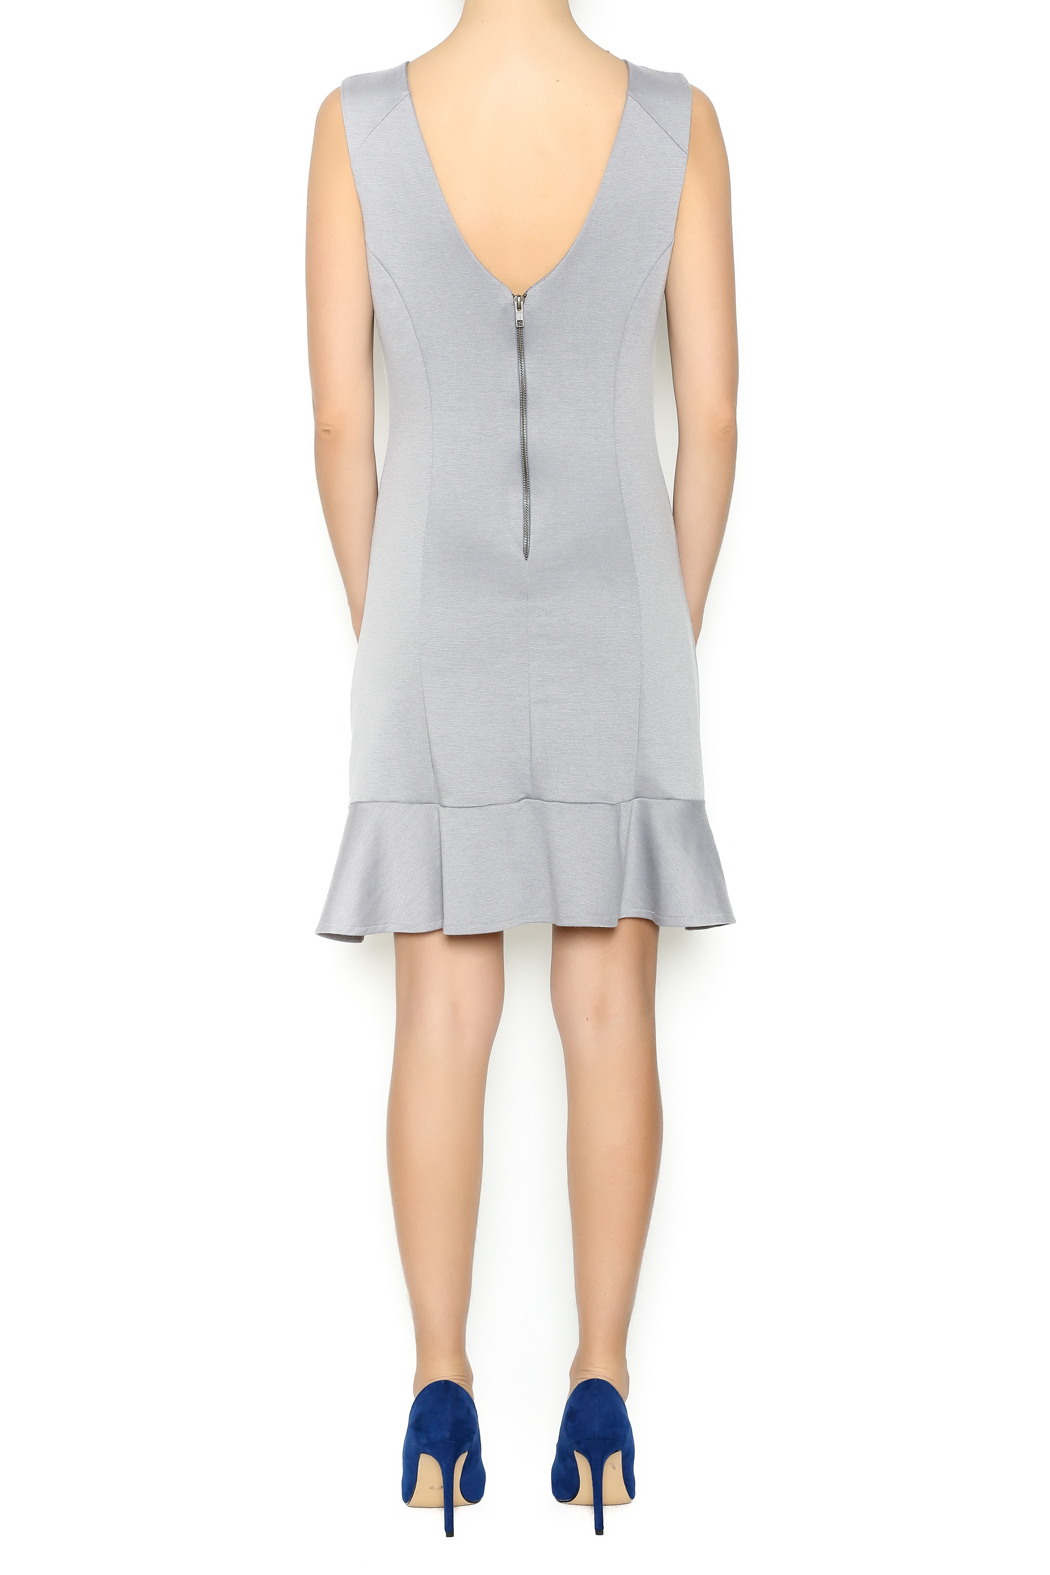 Missy Robertson Grey Dress - Side Cropped Image